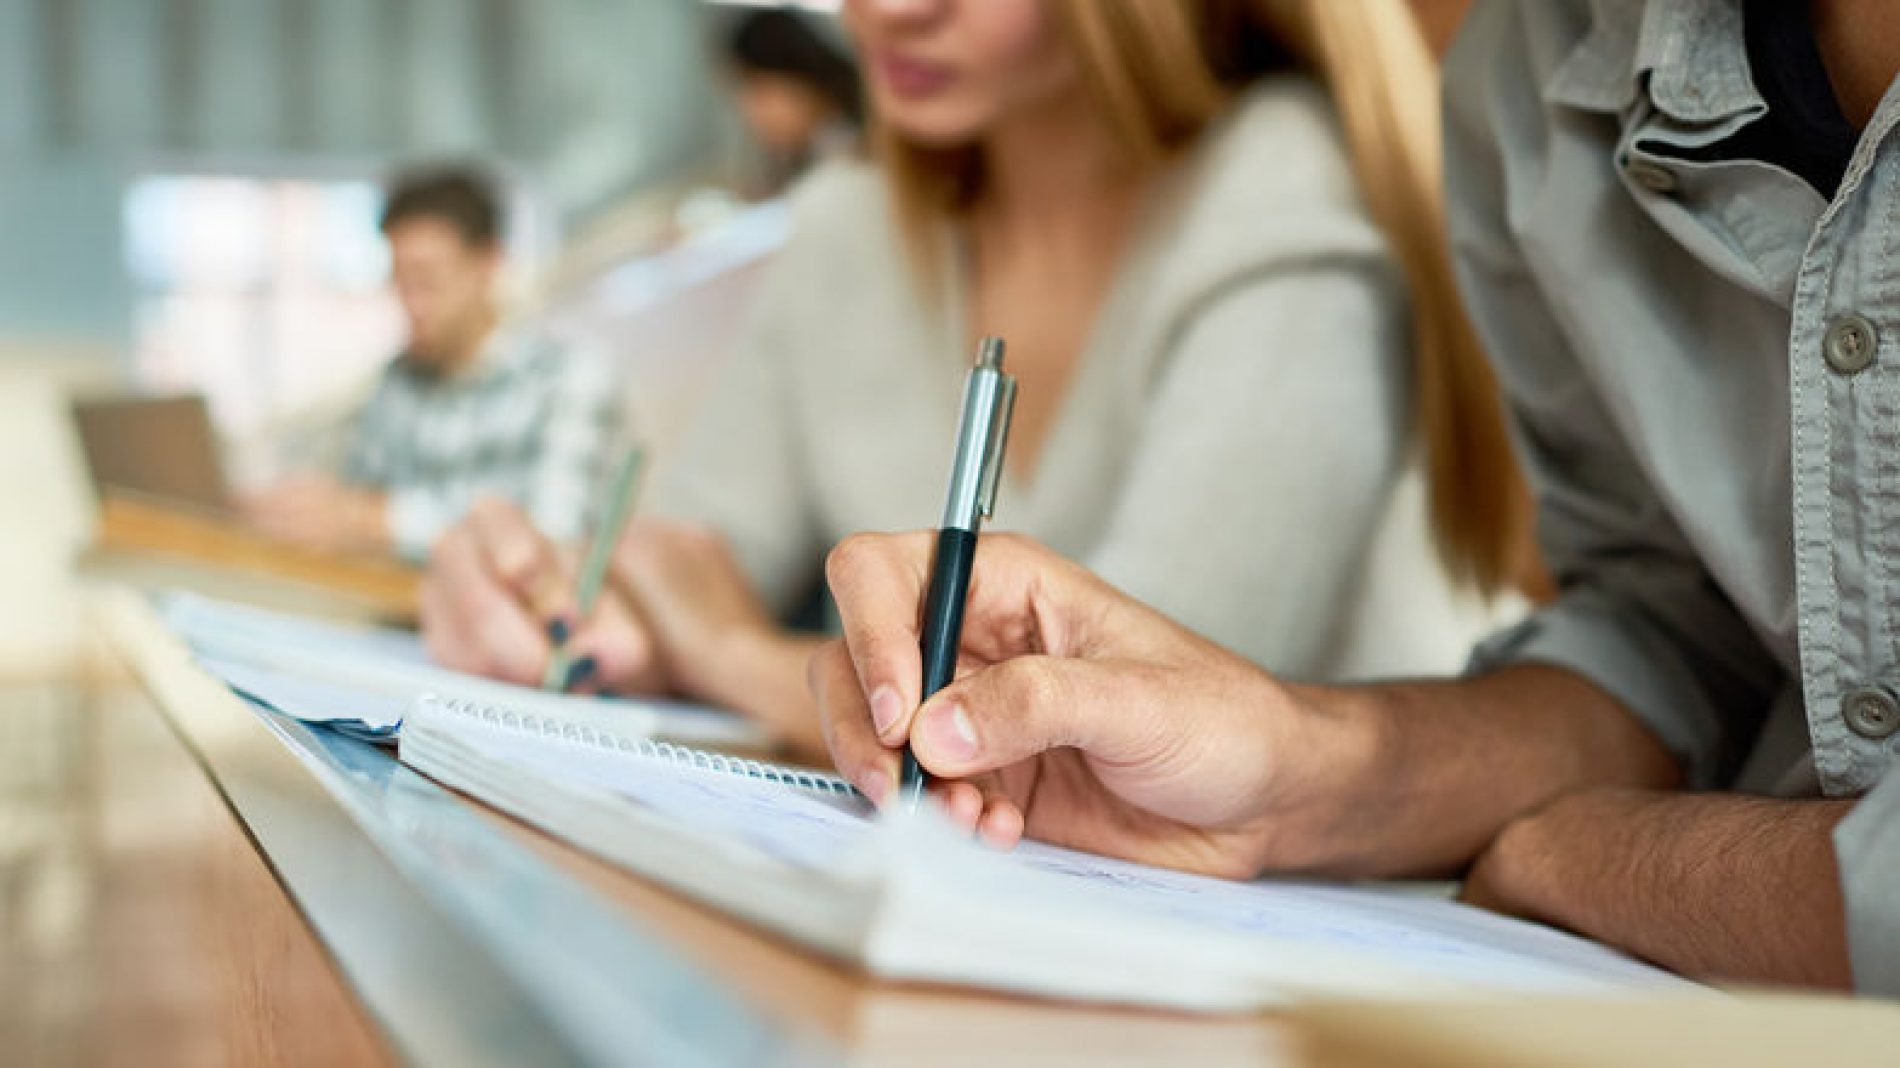 Taking-notes-in-college